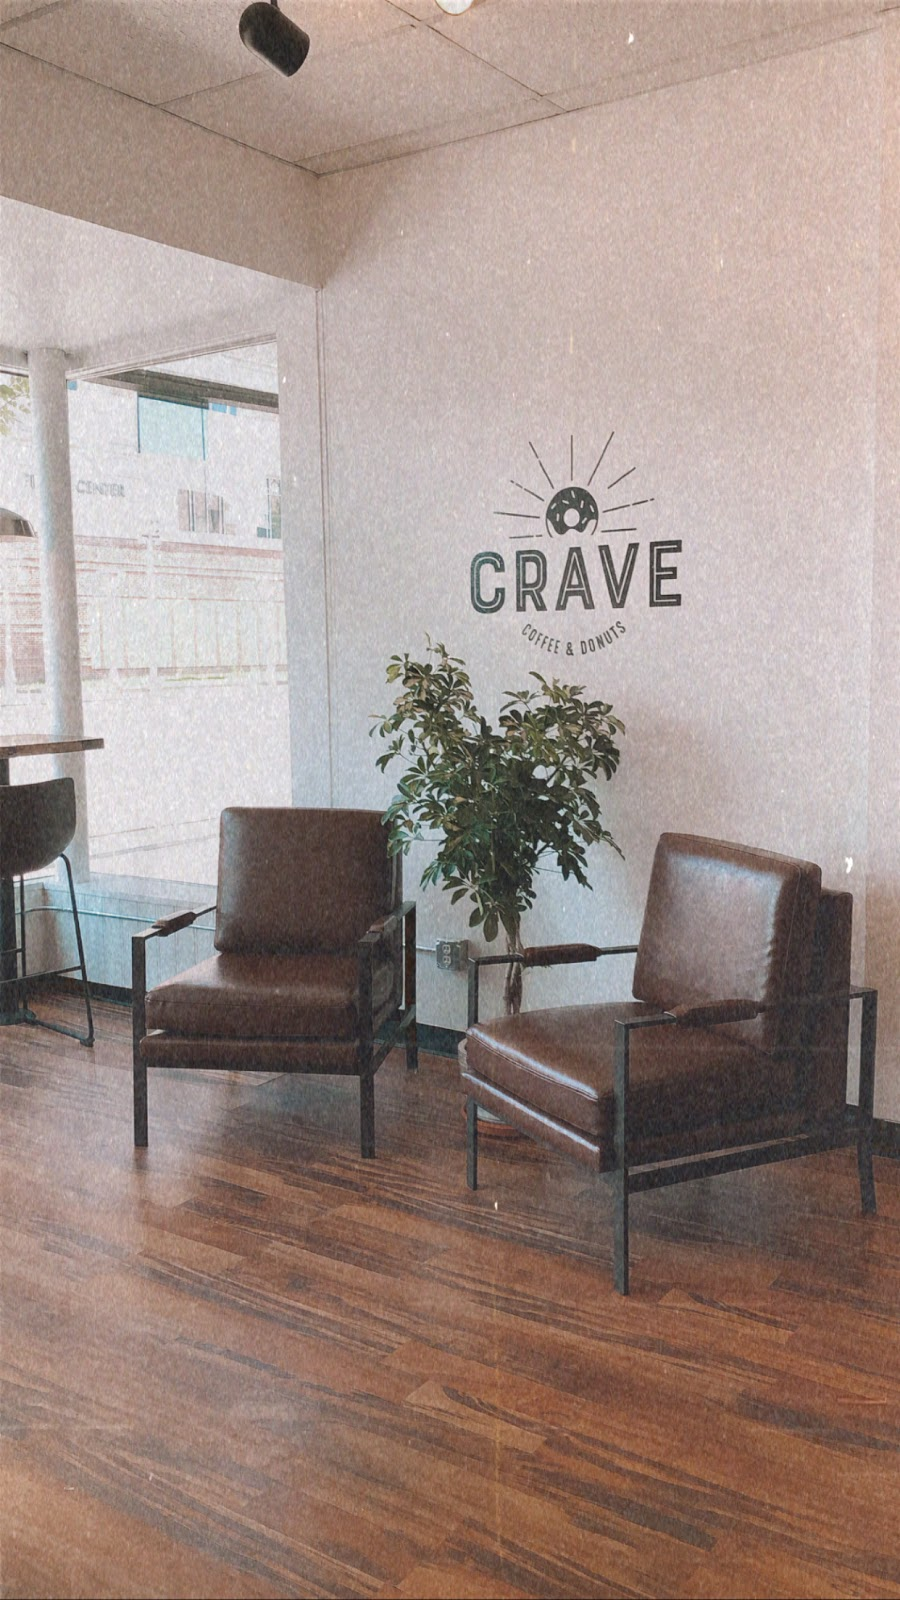 Crave Coffee   restaurant   604 University Ave, Madison, WI 53715, USA   6086095603 OR +1 608-609-5603